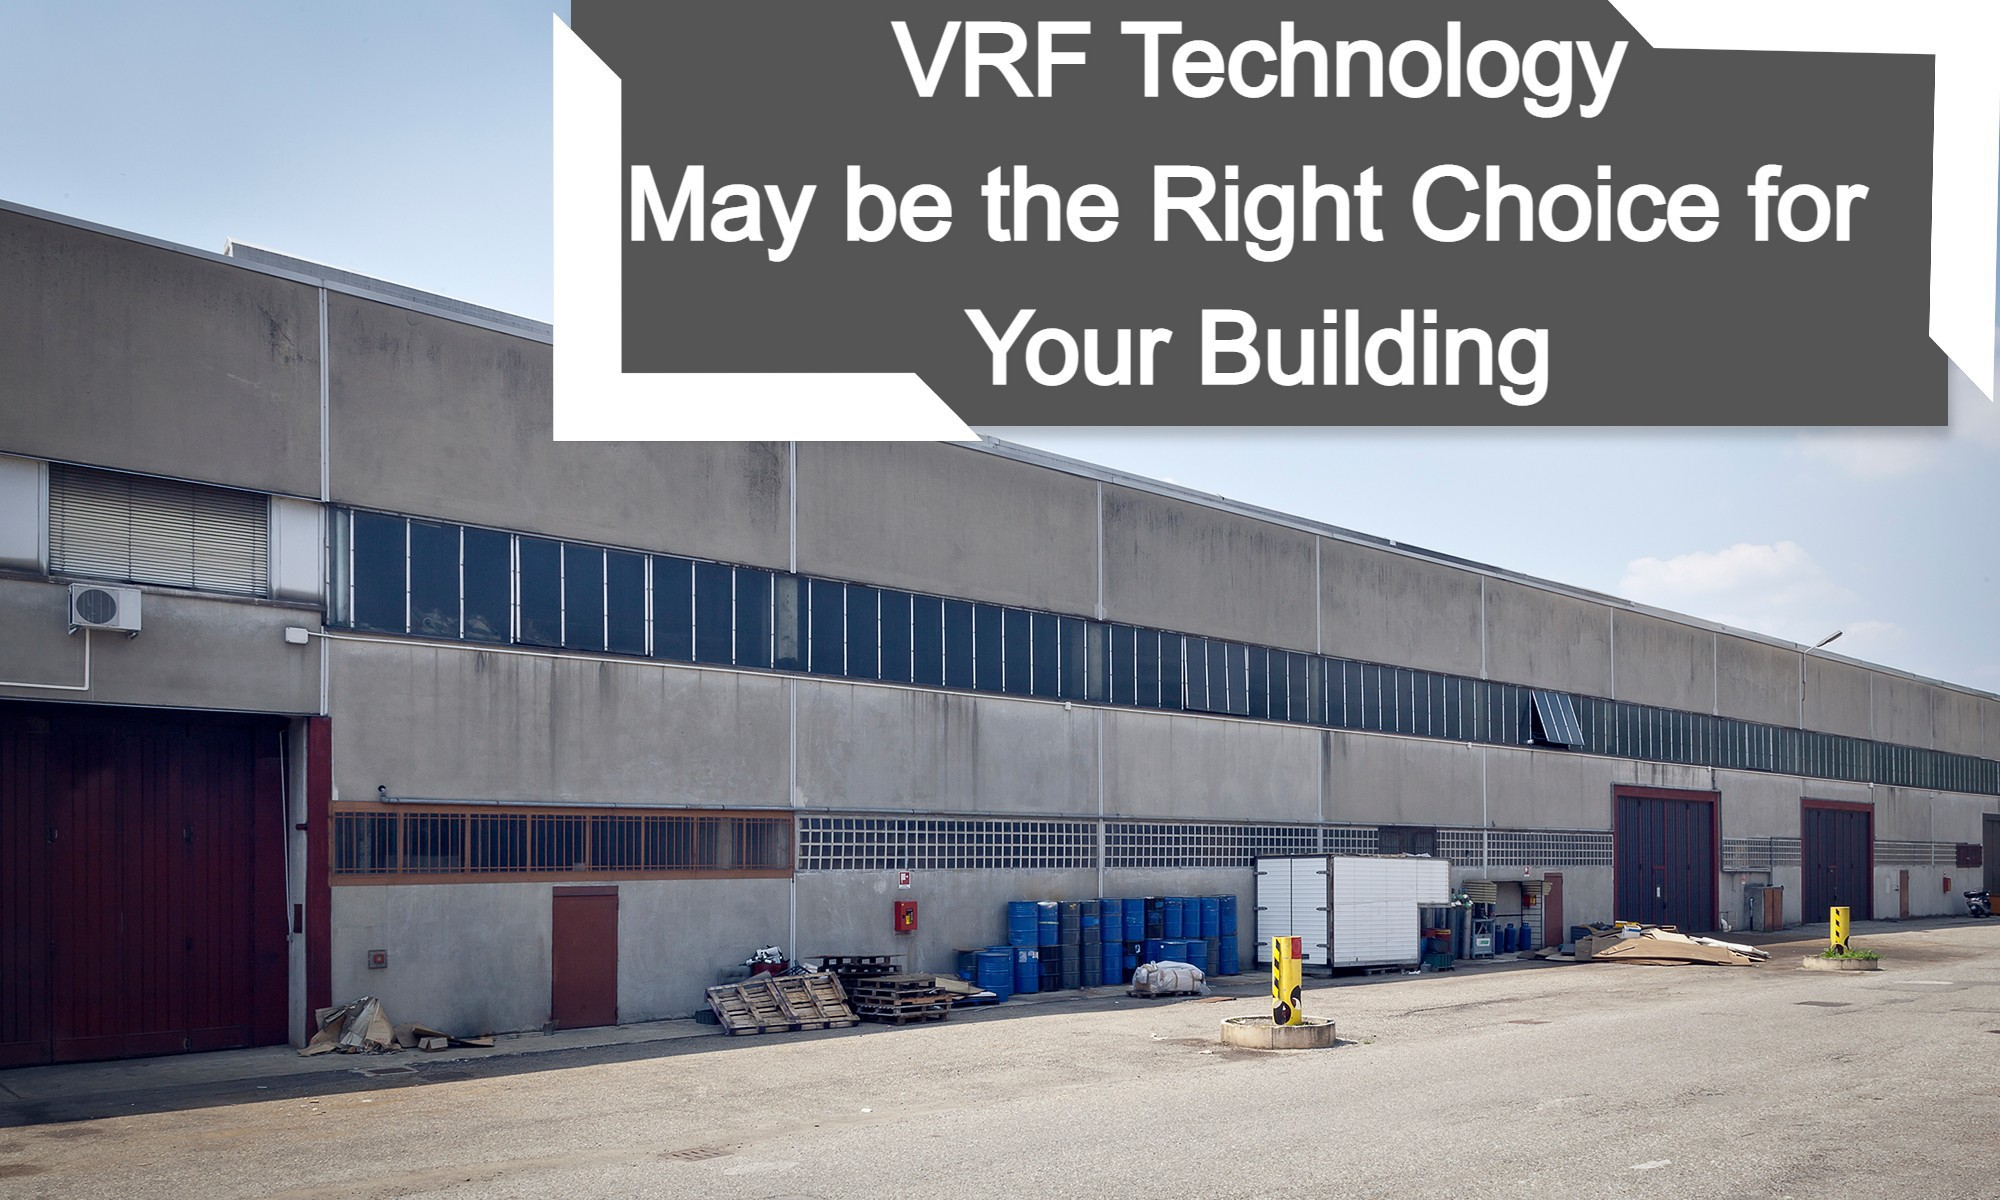 Why VRF Technology May be the Right Choice for Your Building